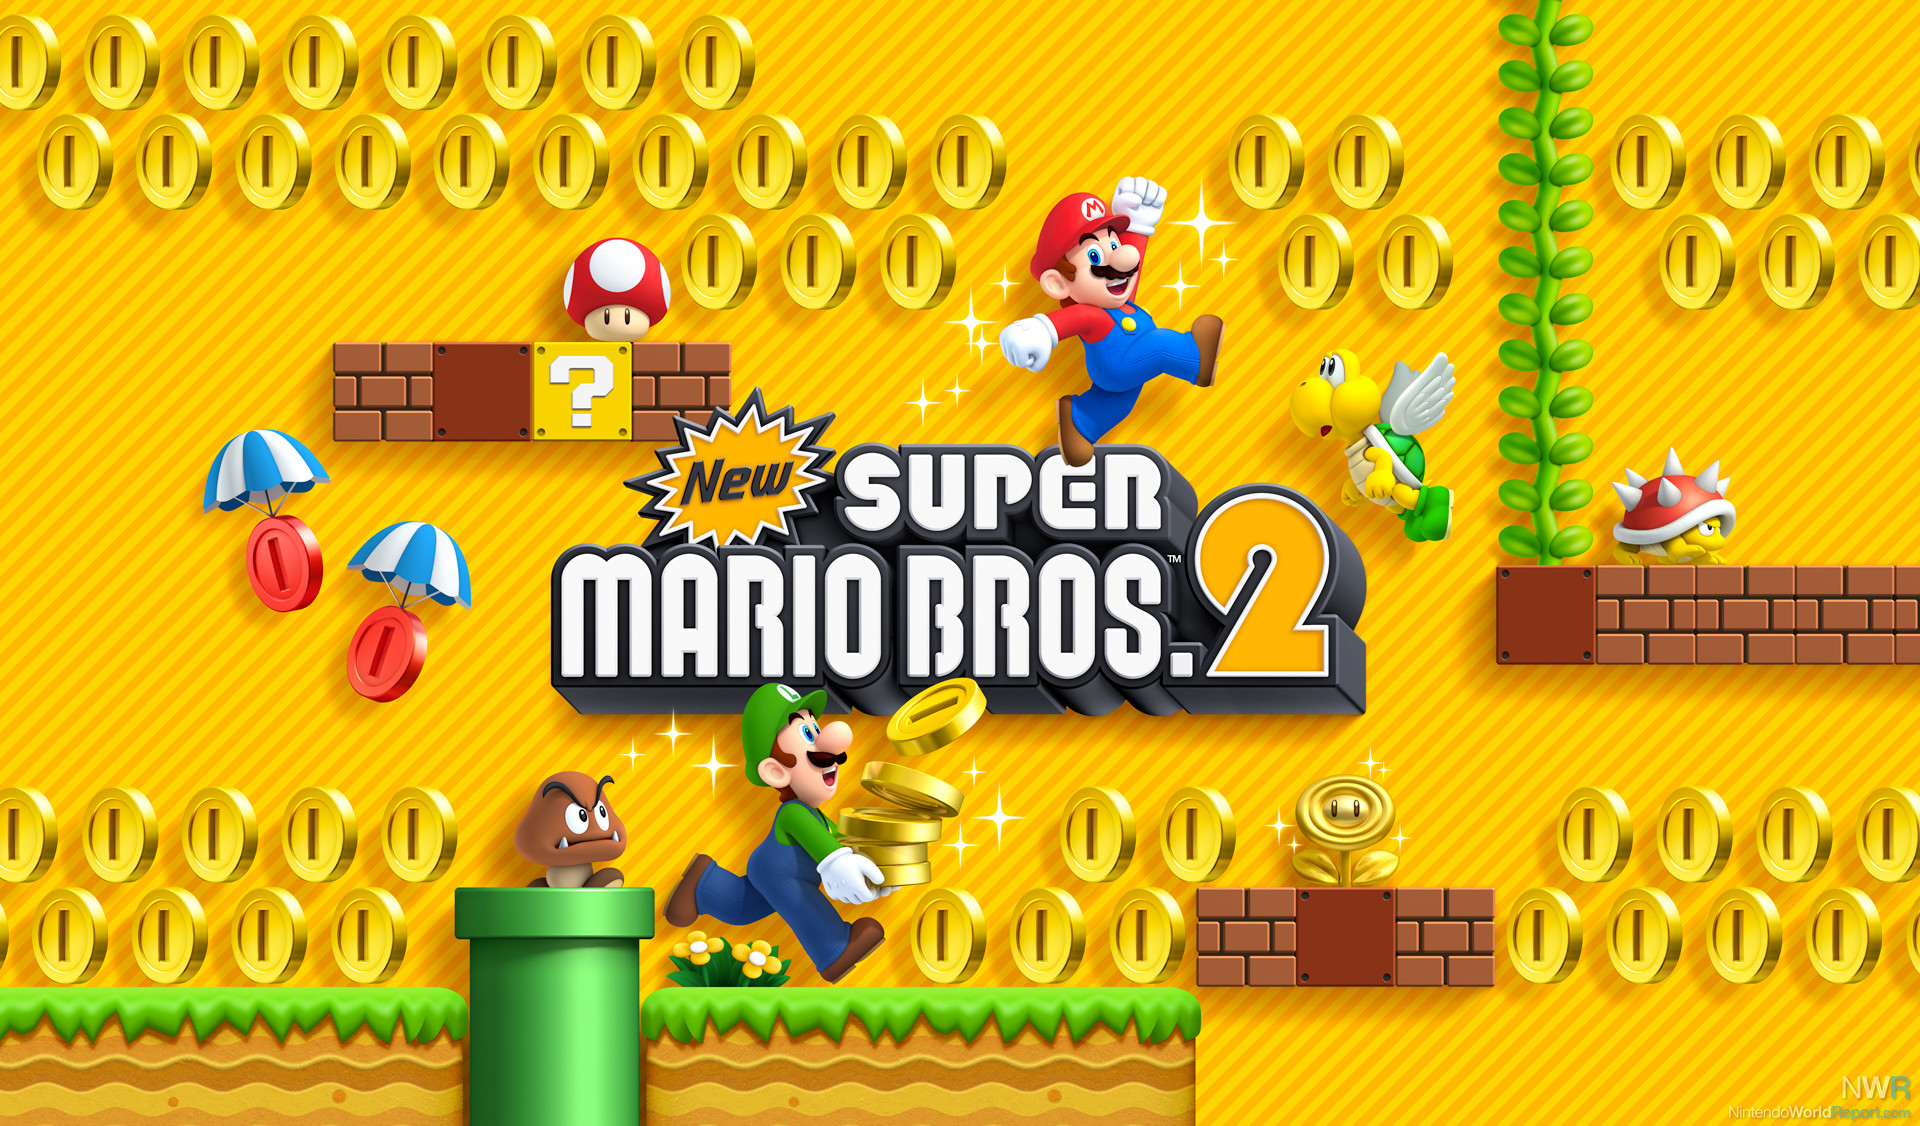 1920x1126 Why New Super Mario Bros. 2 Cannot Rest on the Original's Laurels -  Editorial - Nintendo World Report